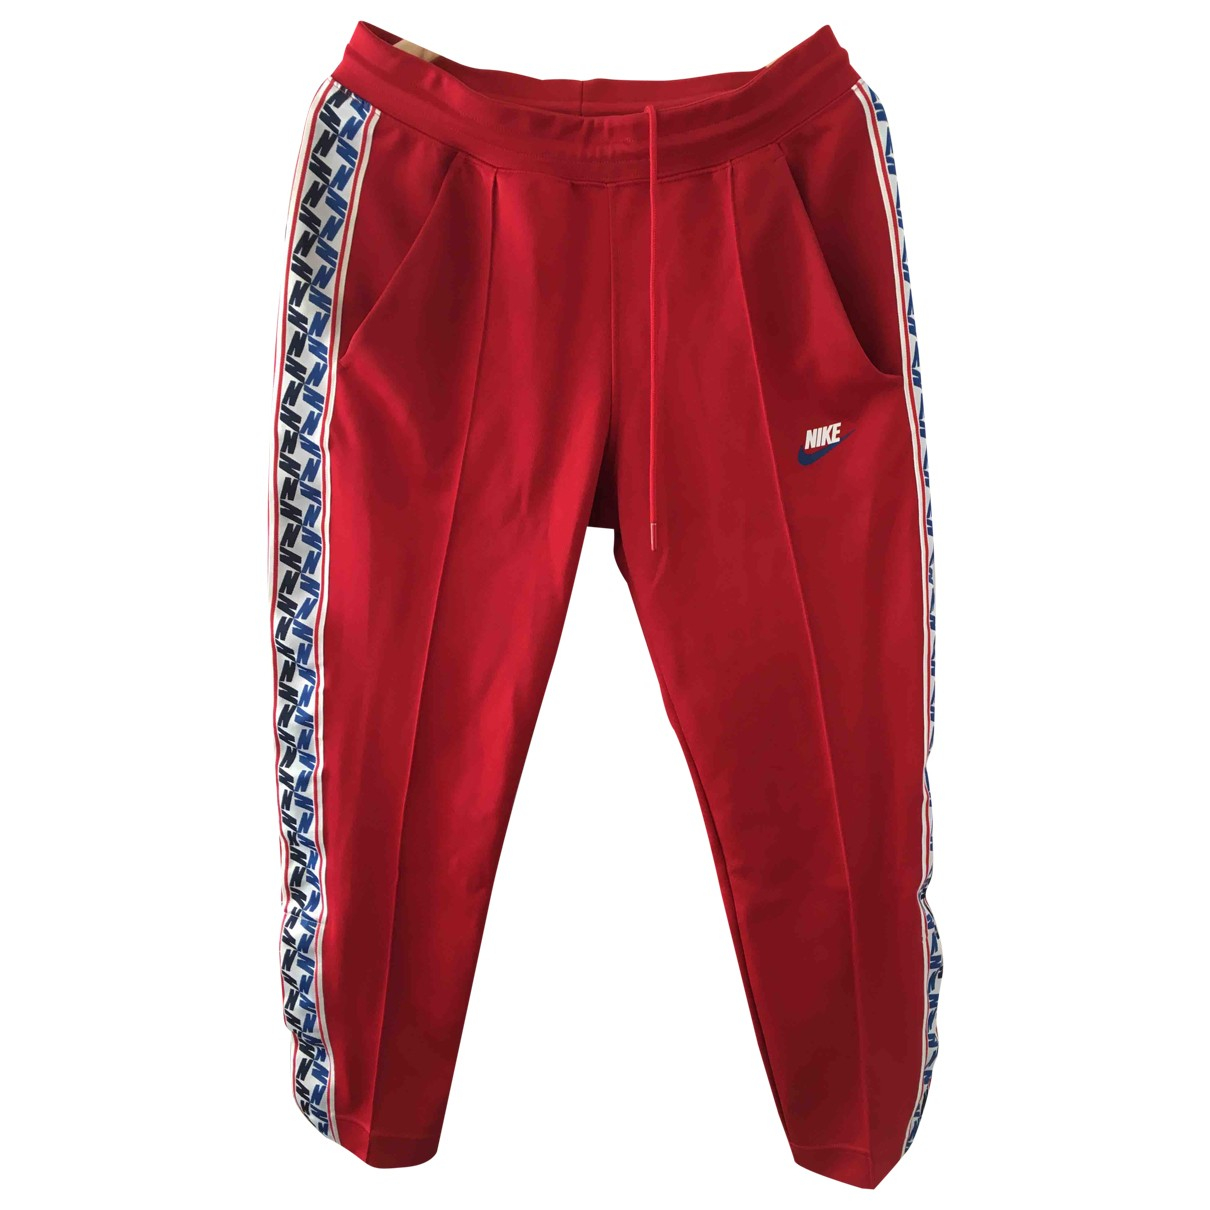 Nike \N Red Trousers for Men M International